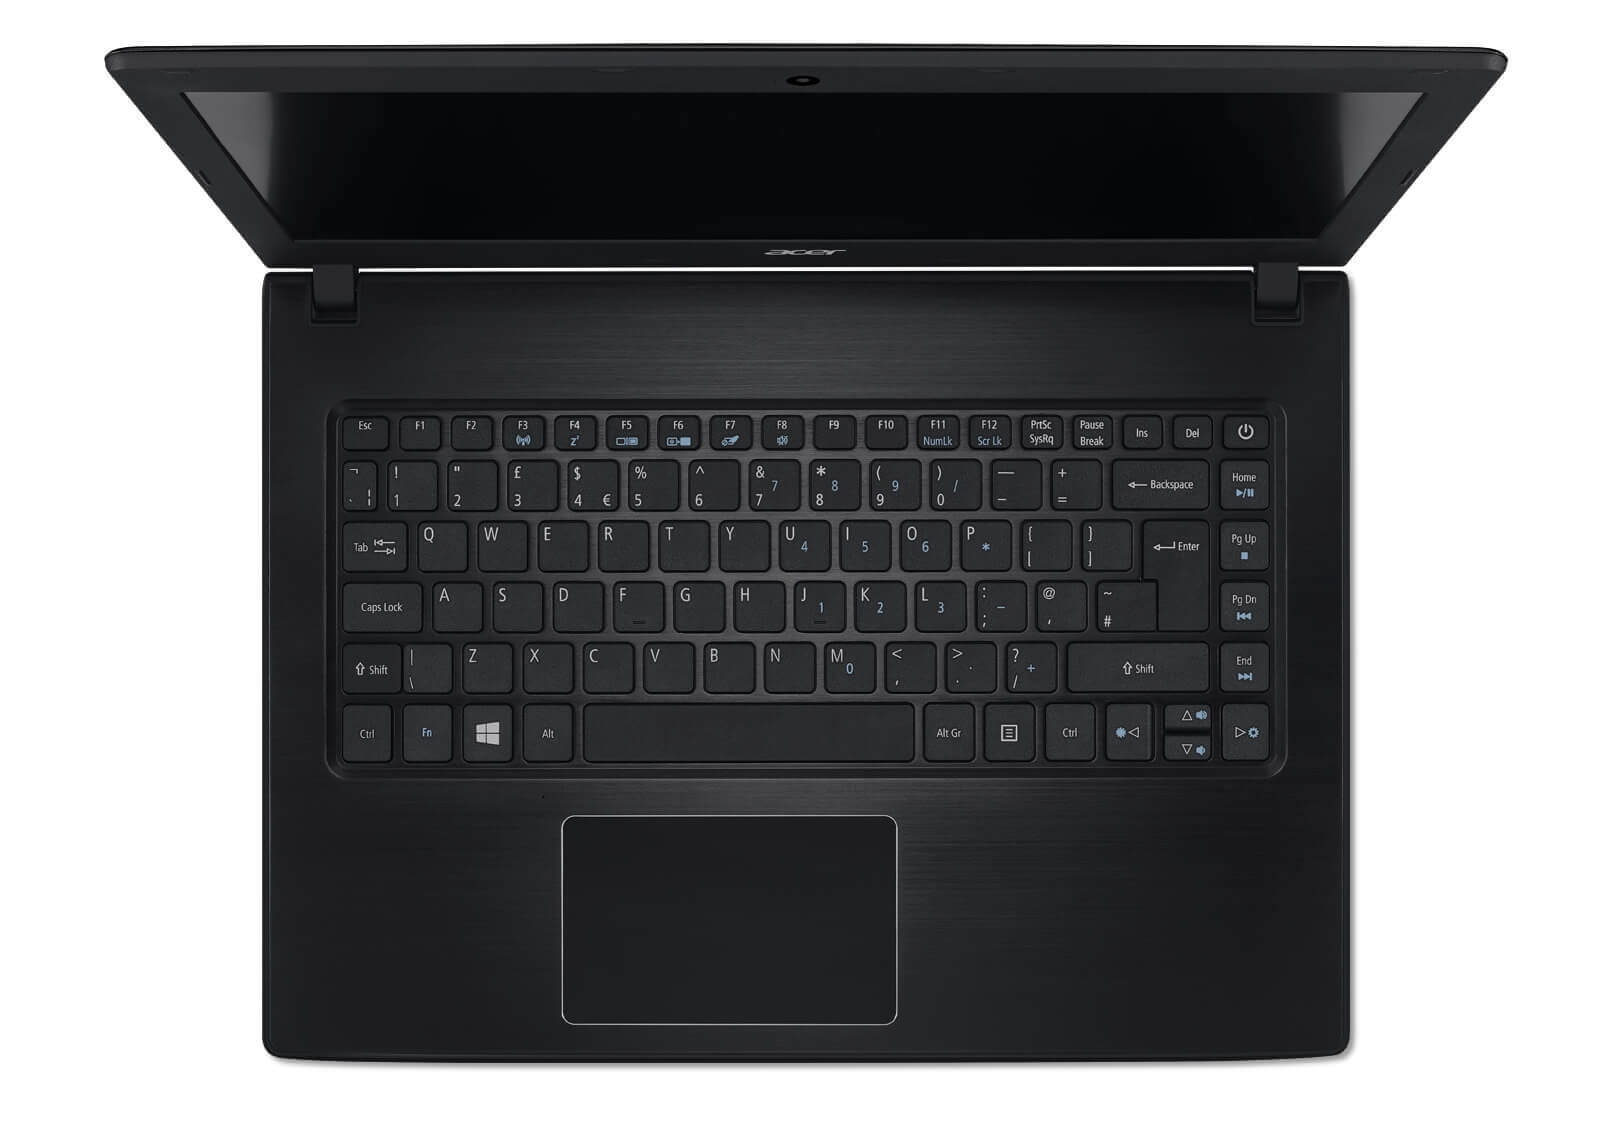 Notebook Acer TravelMate P249 and P259